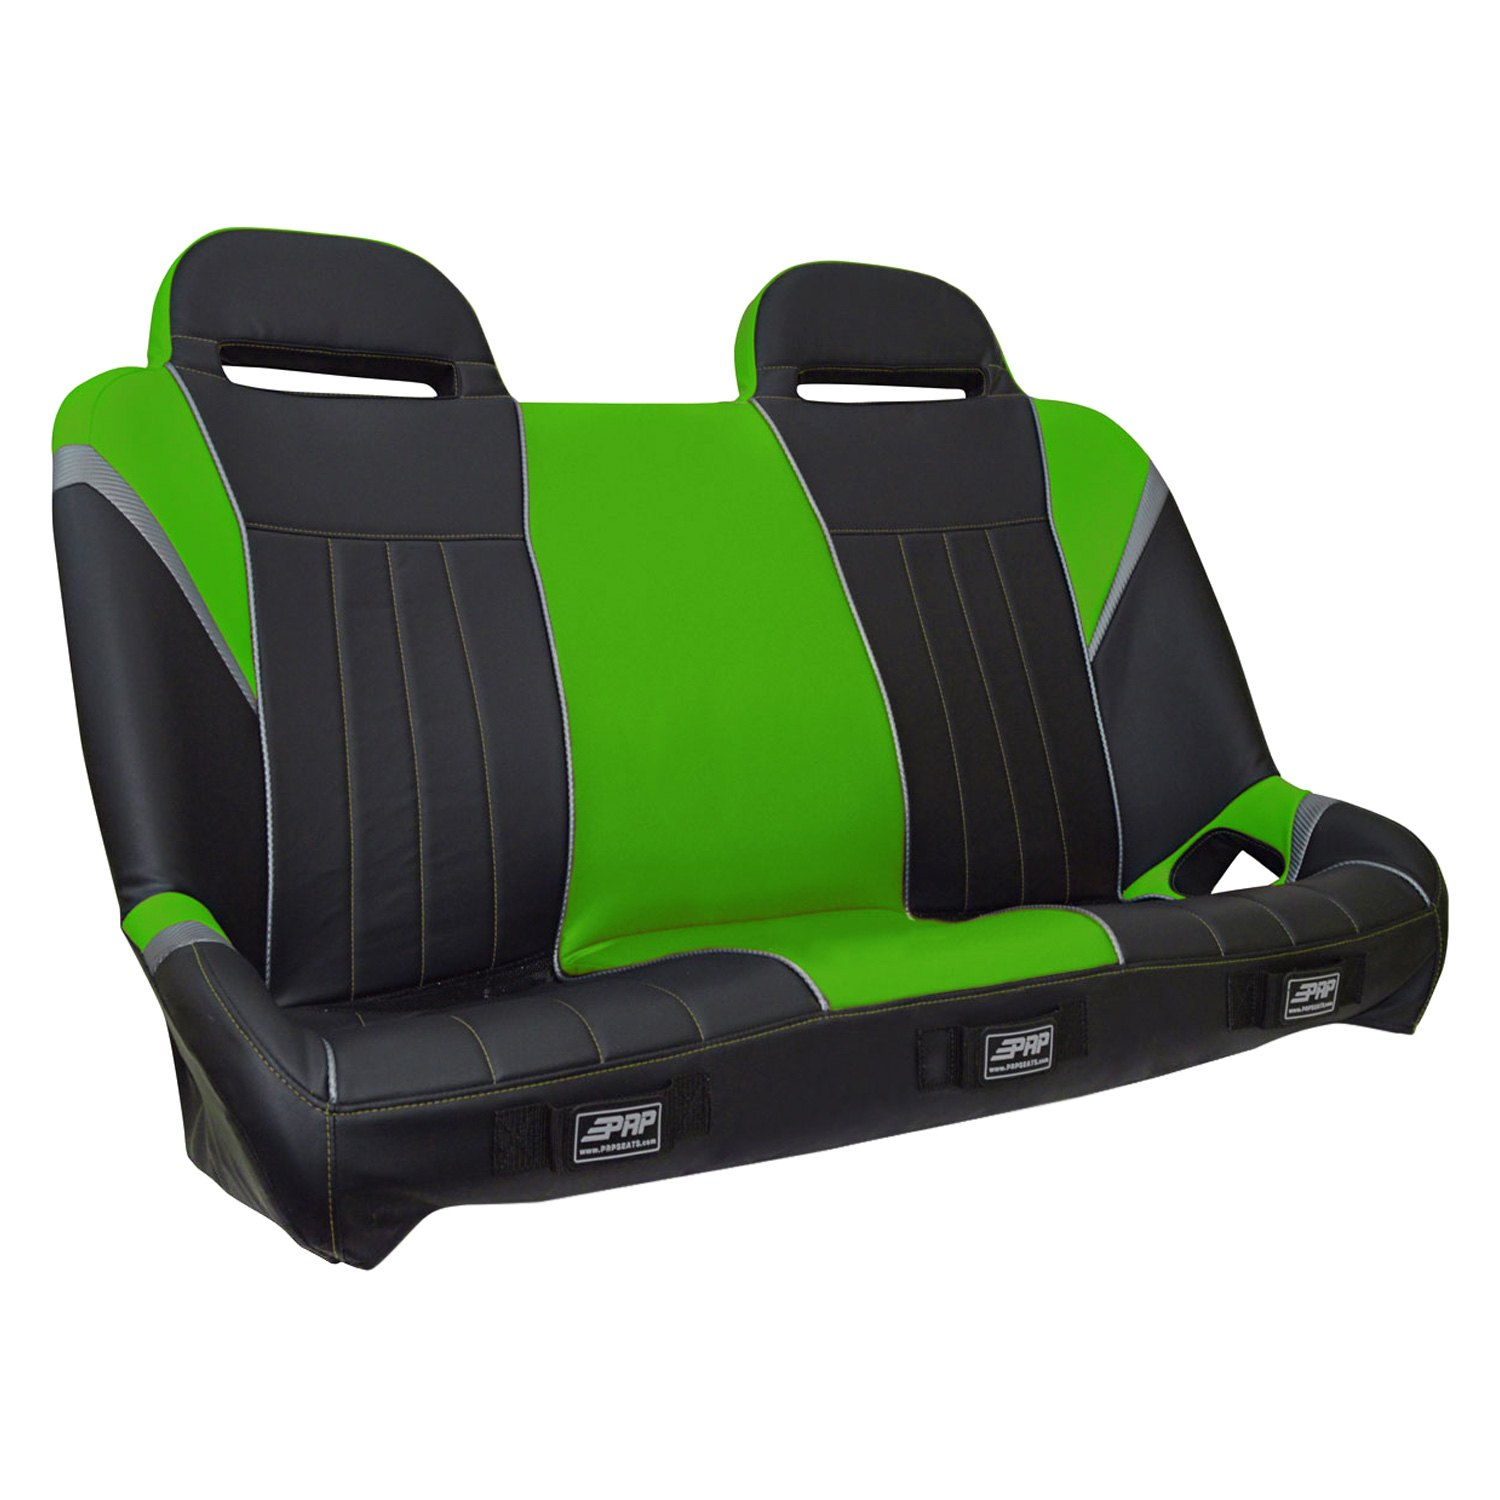 Magnificent Prp Seats A68 Gt S E Rear Suspension Bench Seat Evergreenethics Interior Chair Design Evergreenethicsorg